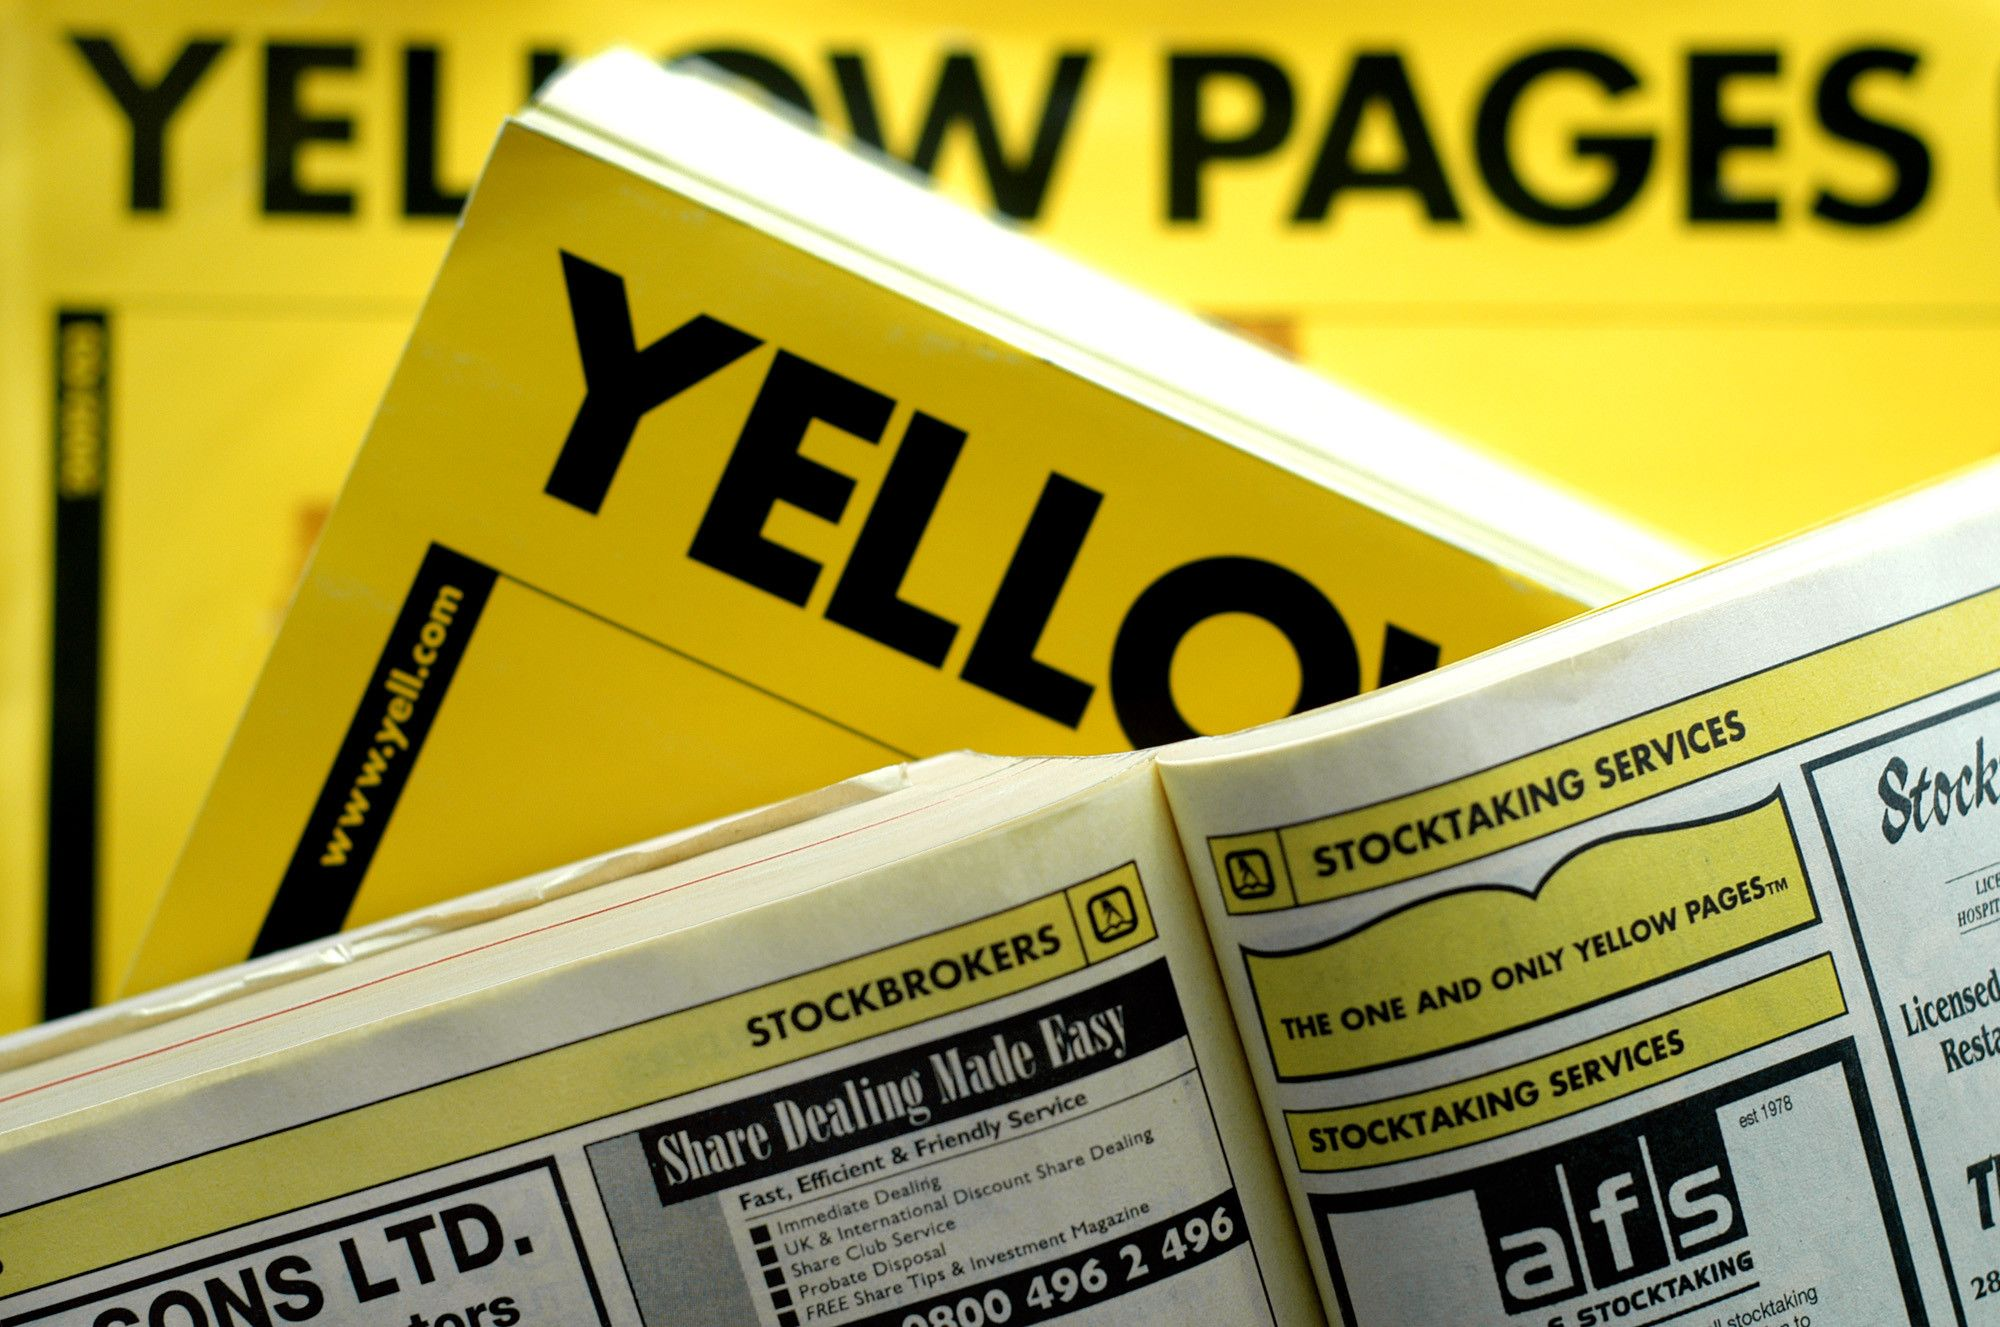 Abu Dhabi Yellow Pages Online Business Directory for Companies